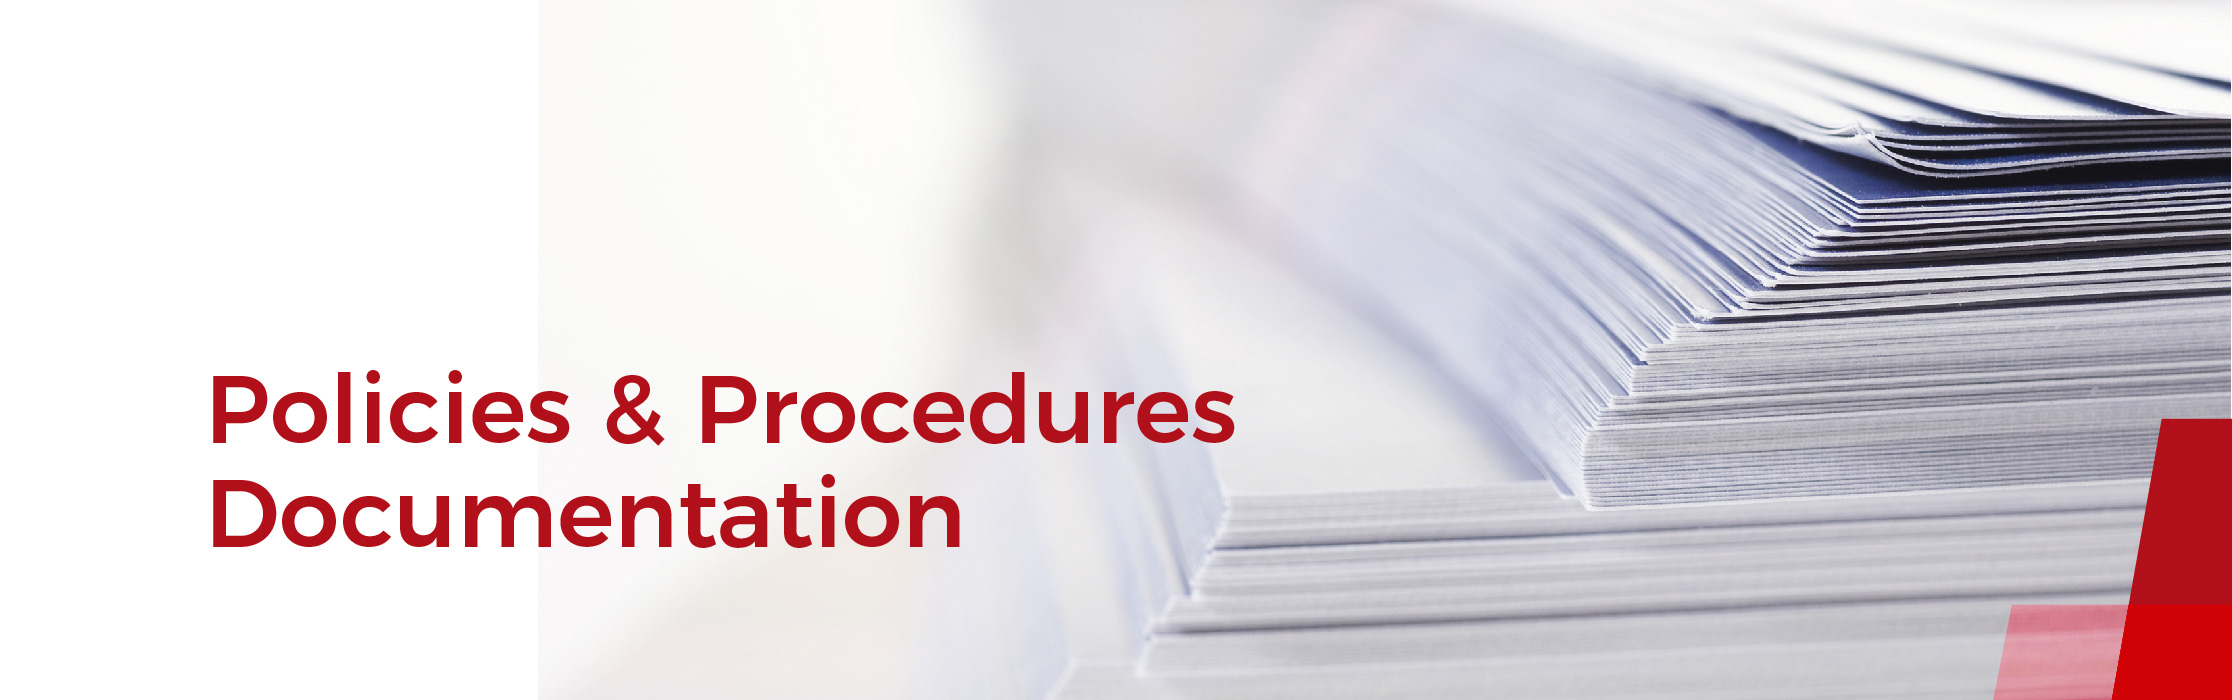 Policies procedures documentation the precise articulation of policies and procedures frames a structured workflow for a charity it also ensures consistency throughout the charity maxwellsz